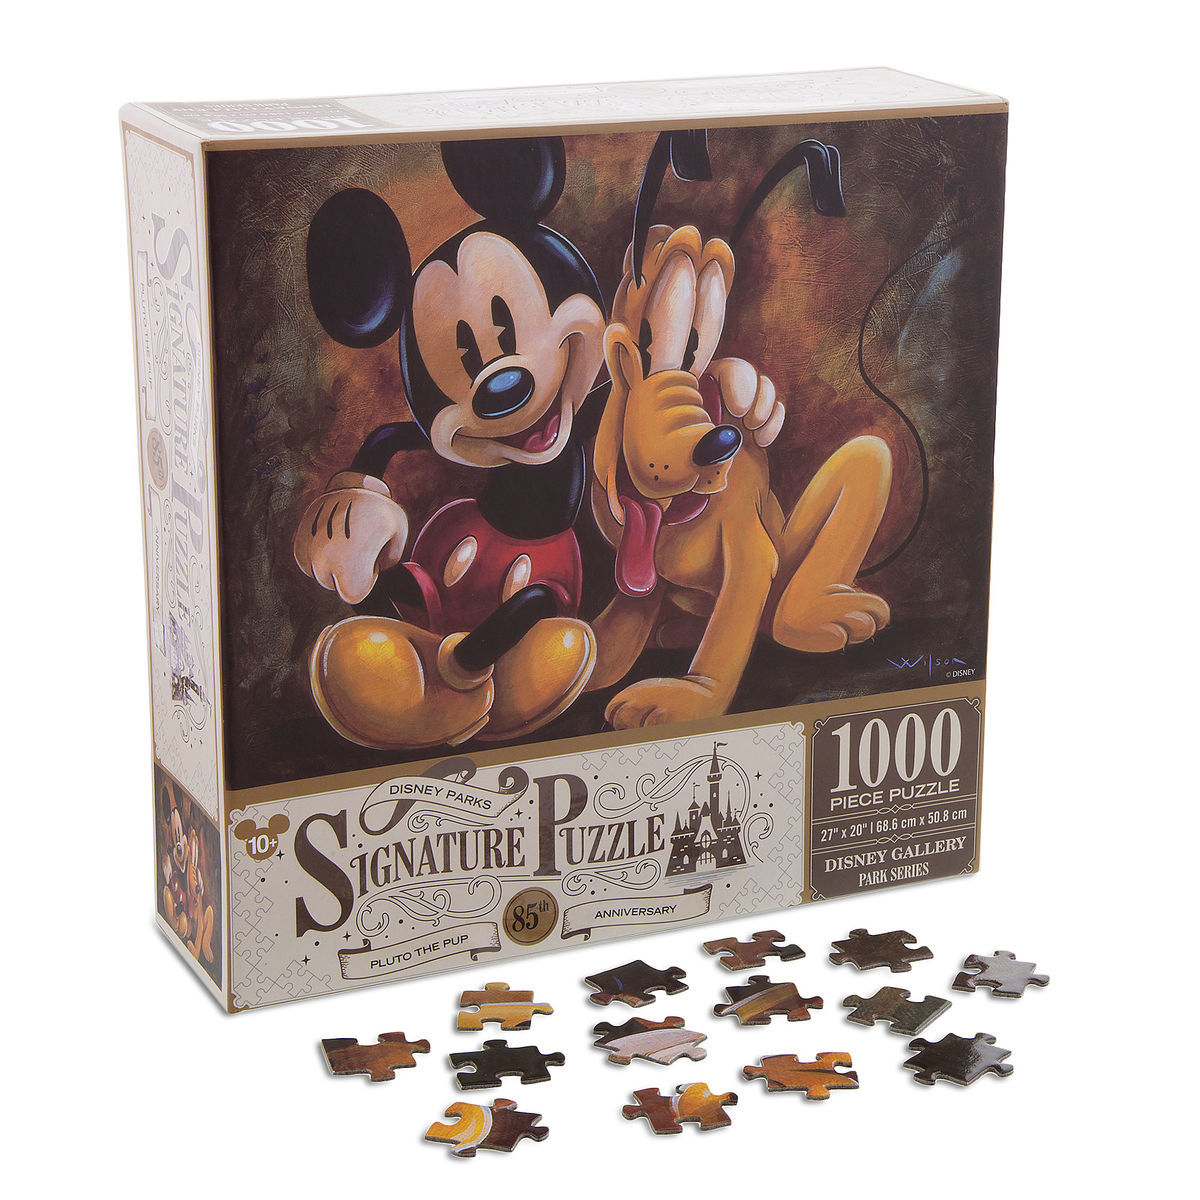 Mickey mouse and pluto pluto the pup 85th anniversary jigsaw puzzle thumbnail image of mickey mouse and pluto pluto the pup 85th anniversary jigsaw puzzle gumiabroncs Image collections